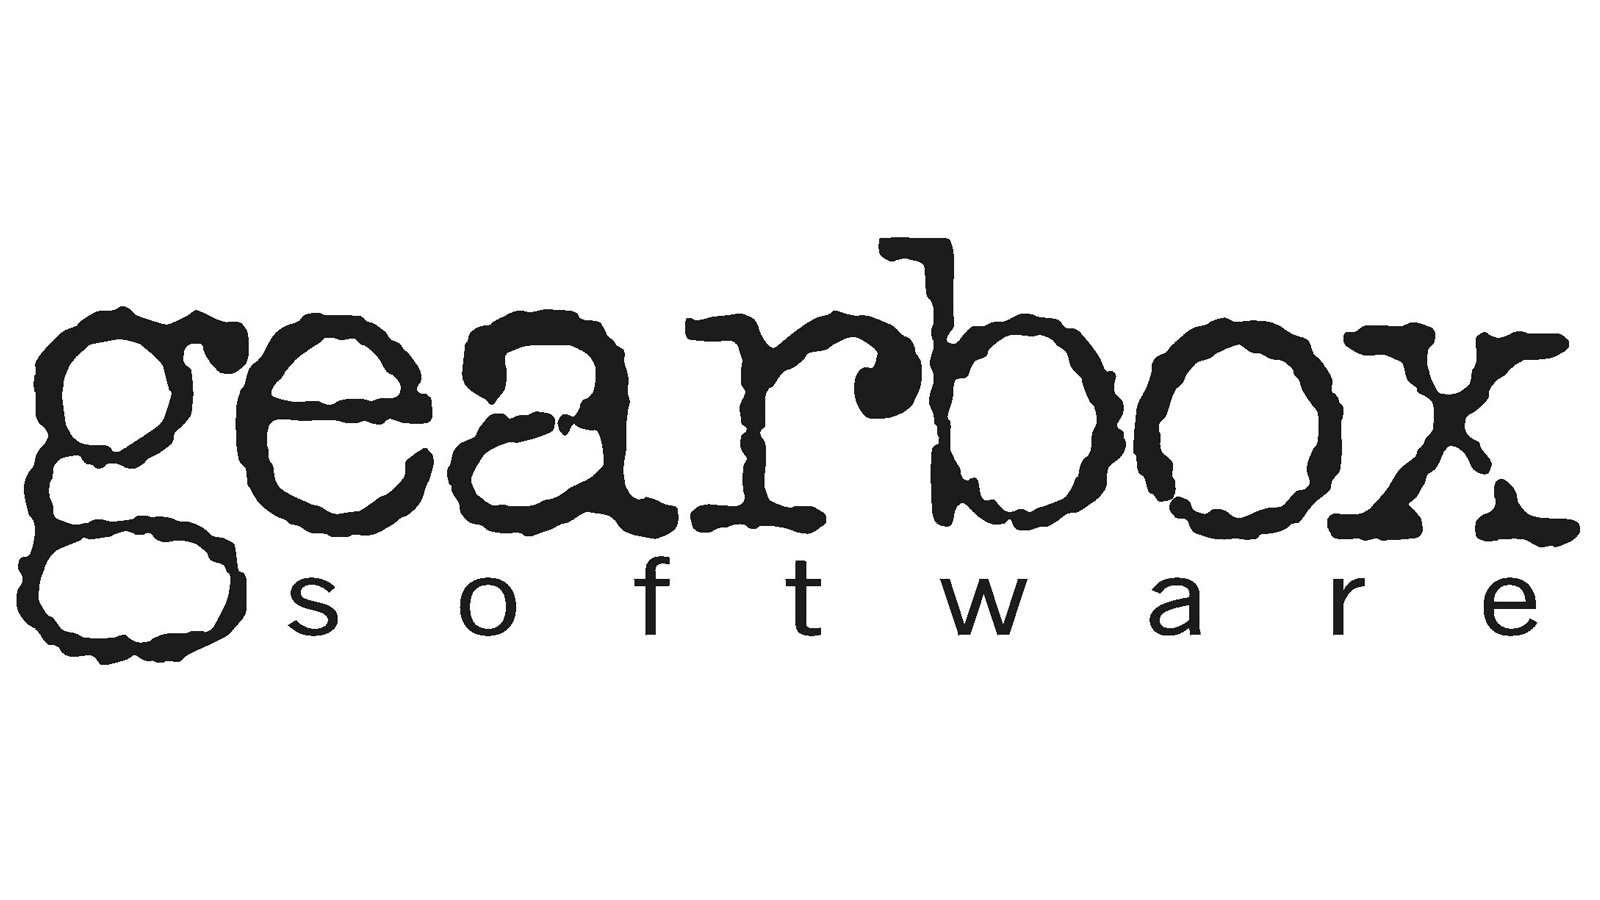 Gearbox software pitchford mehr power ist immer besser for Couch koop ps4